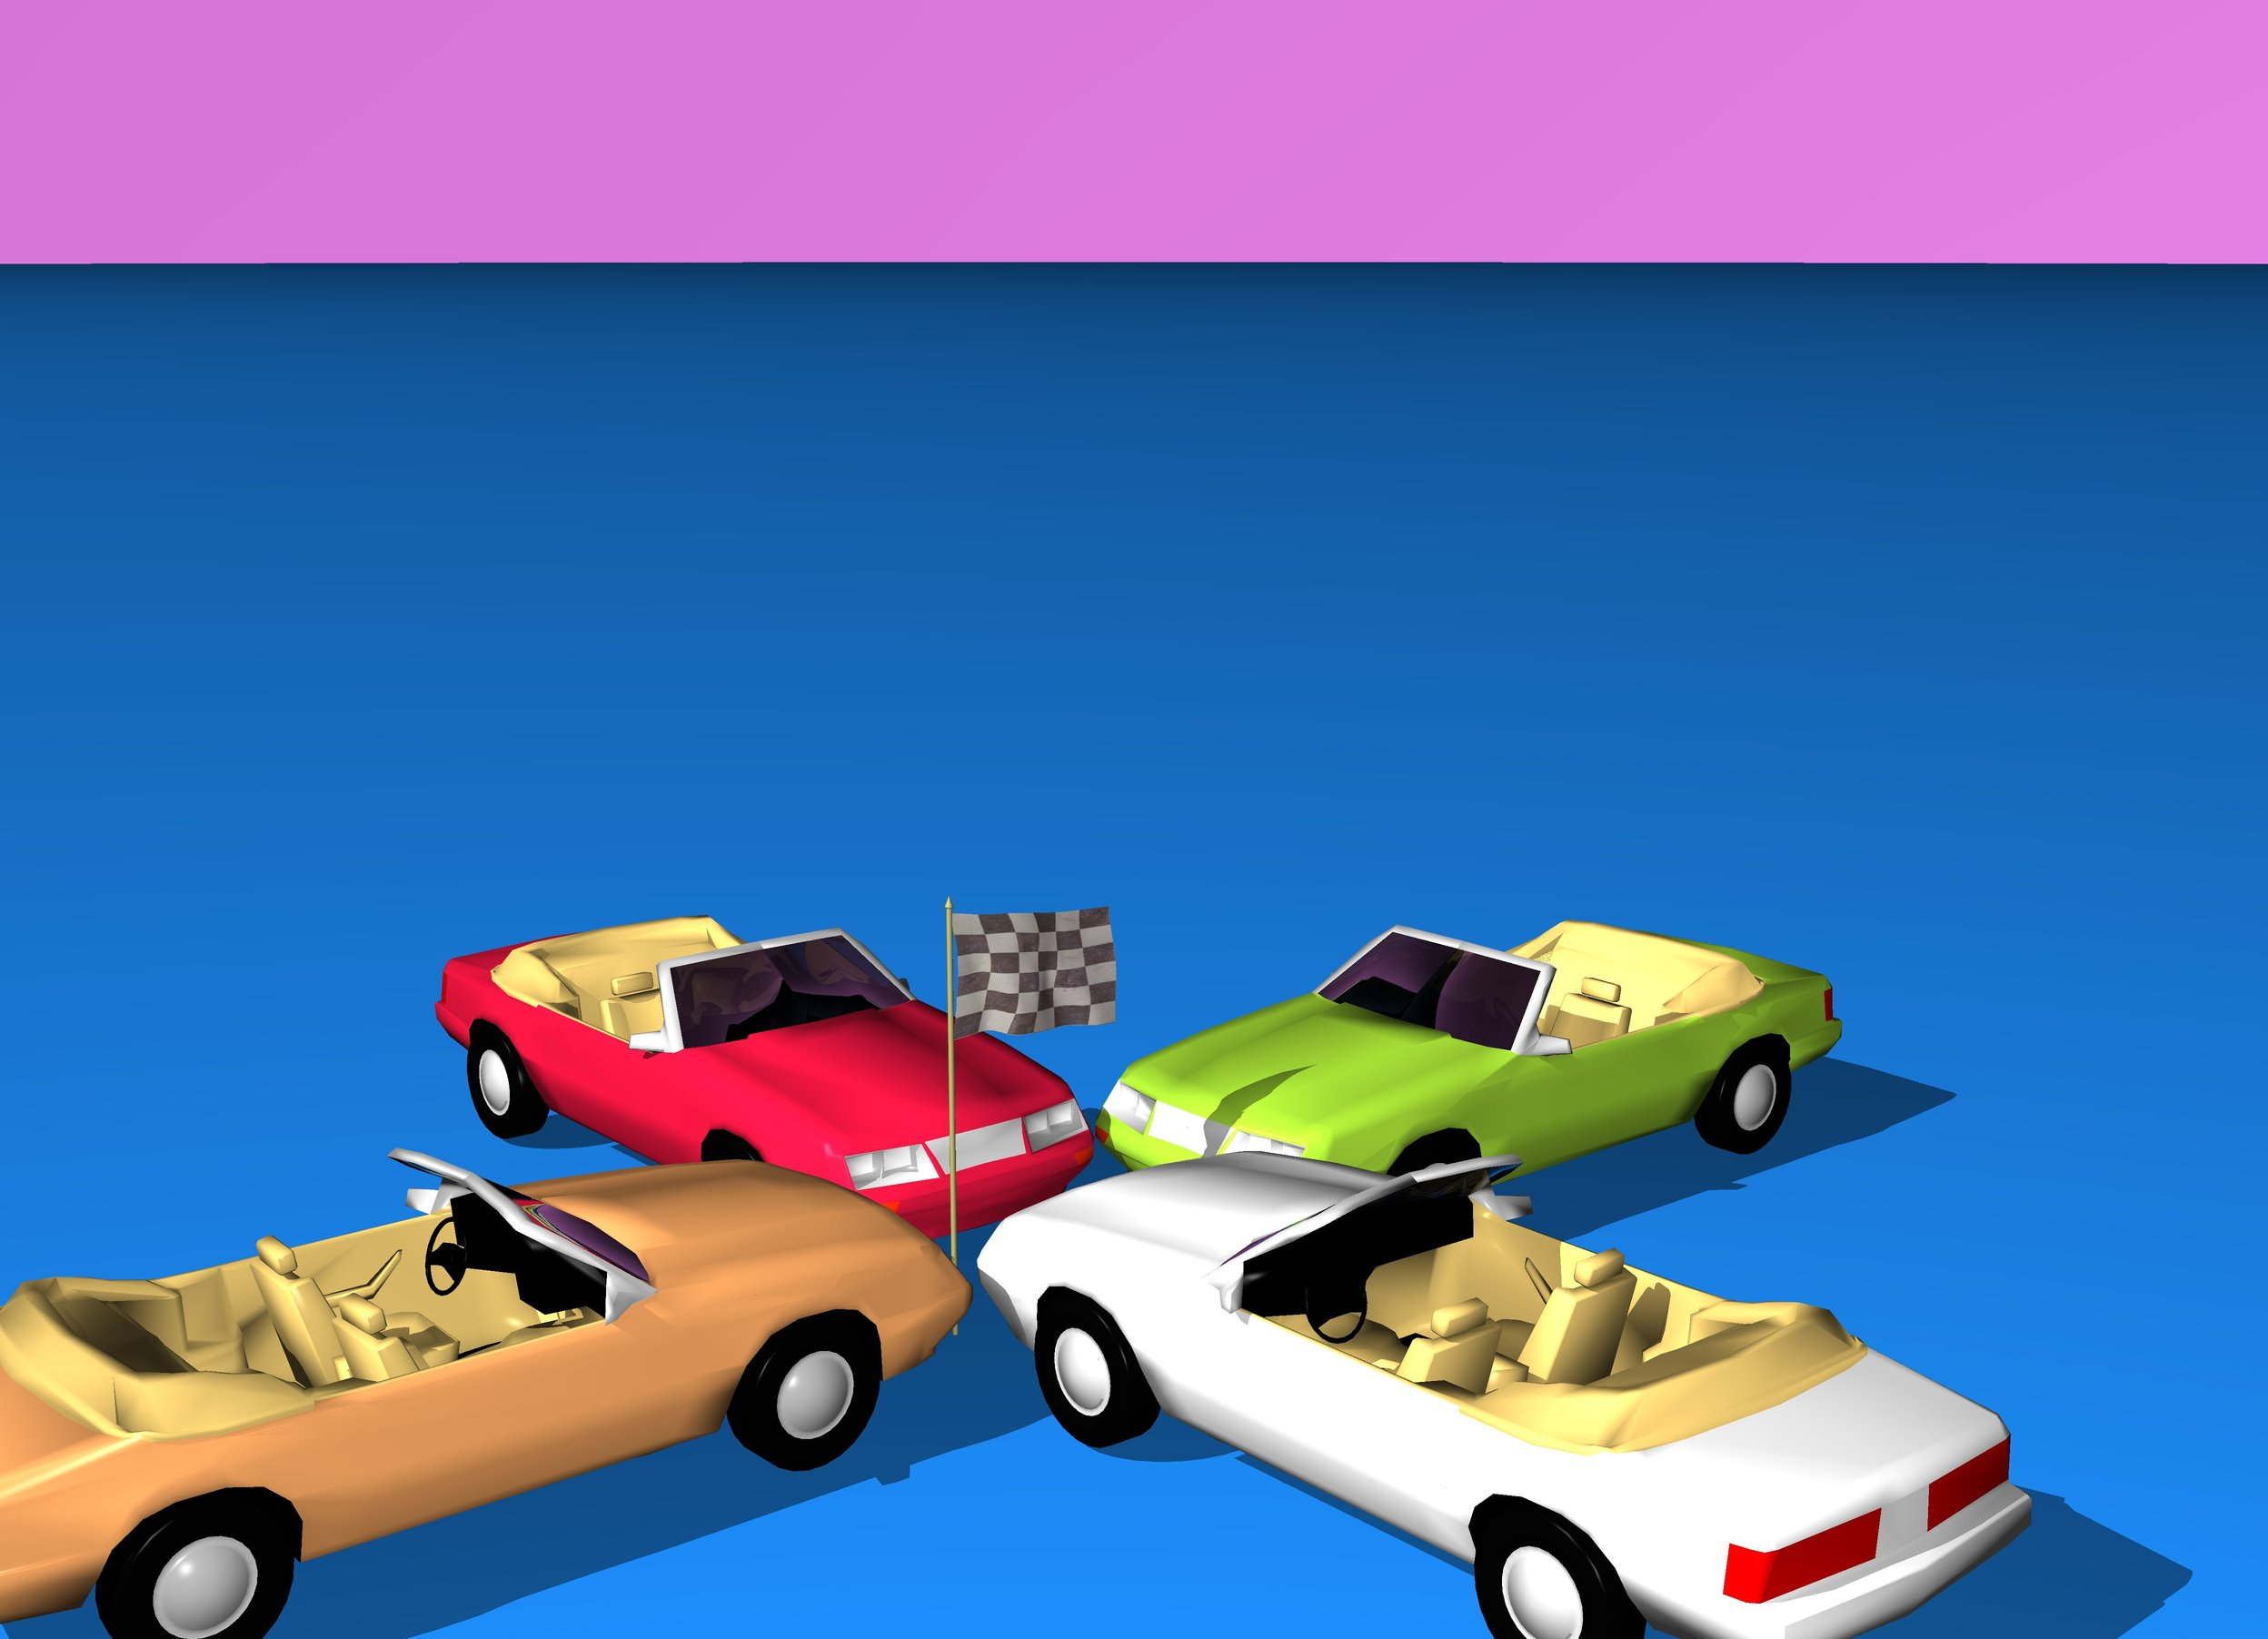 Input text: The ground is dodger blue. The sky is violet. There is a checkerboard flag. There is a yellow-green car one foot to the right of the flag. The car is facing the flag. A second sandy brown car is one foot to the left of the flag. The second car faces the flag. A third crimson car is one foot north of the flag. The third car faces the flag. A fourth white smoke car is one foot south of the flag. The fourth car faces the flag.